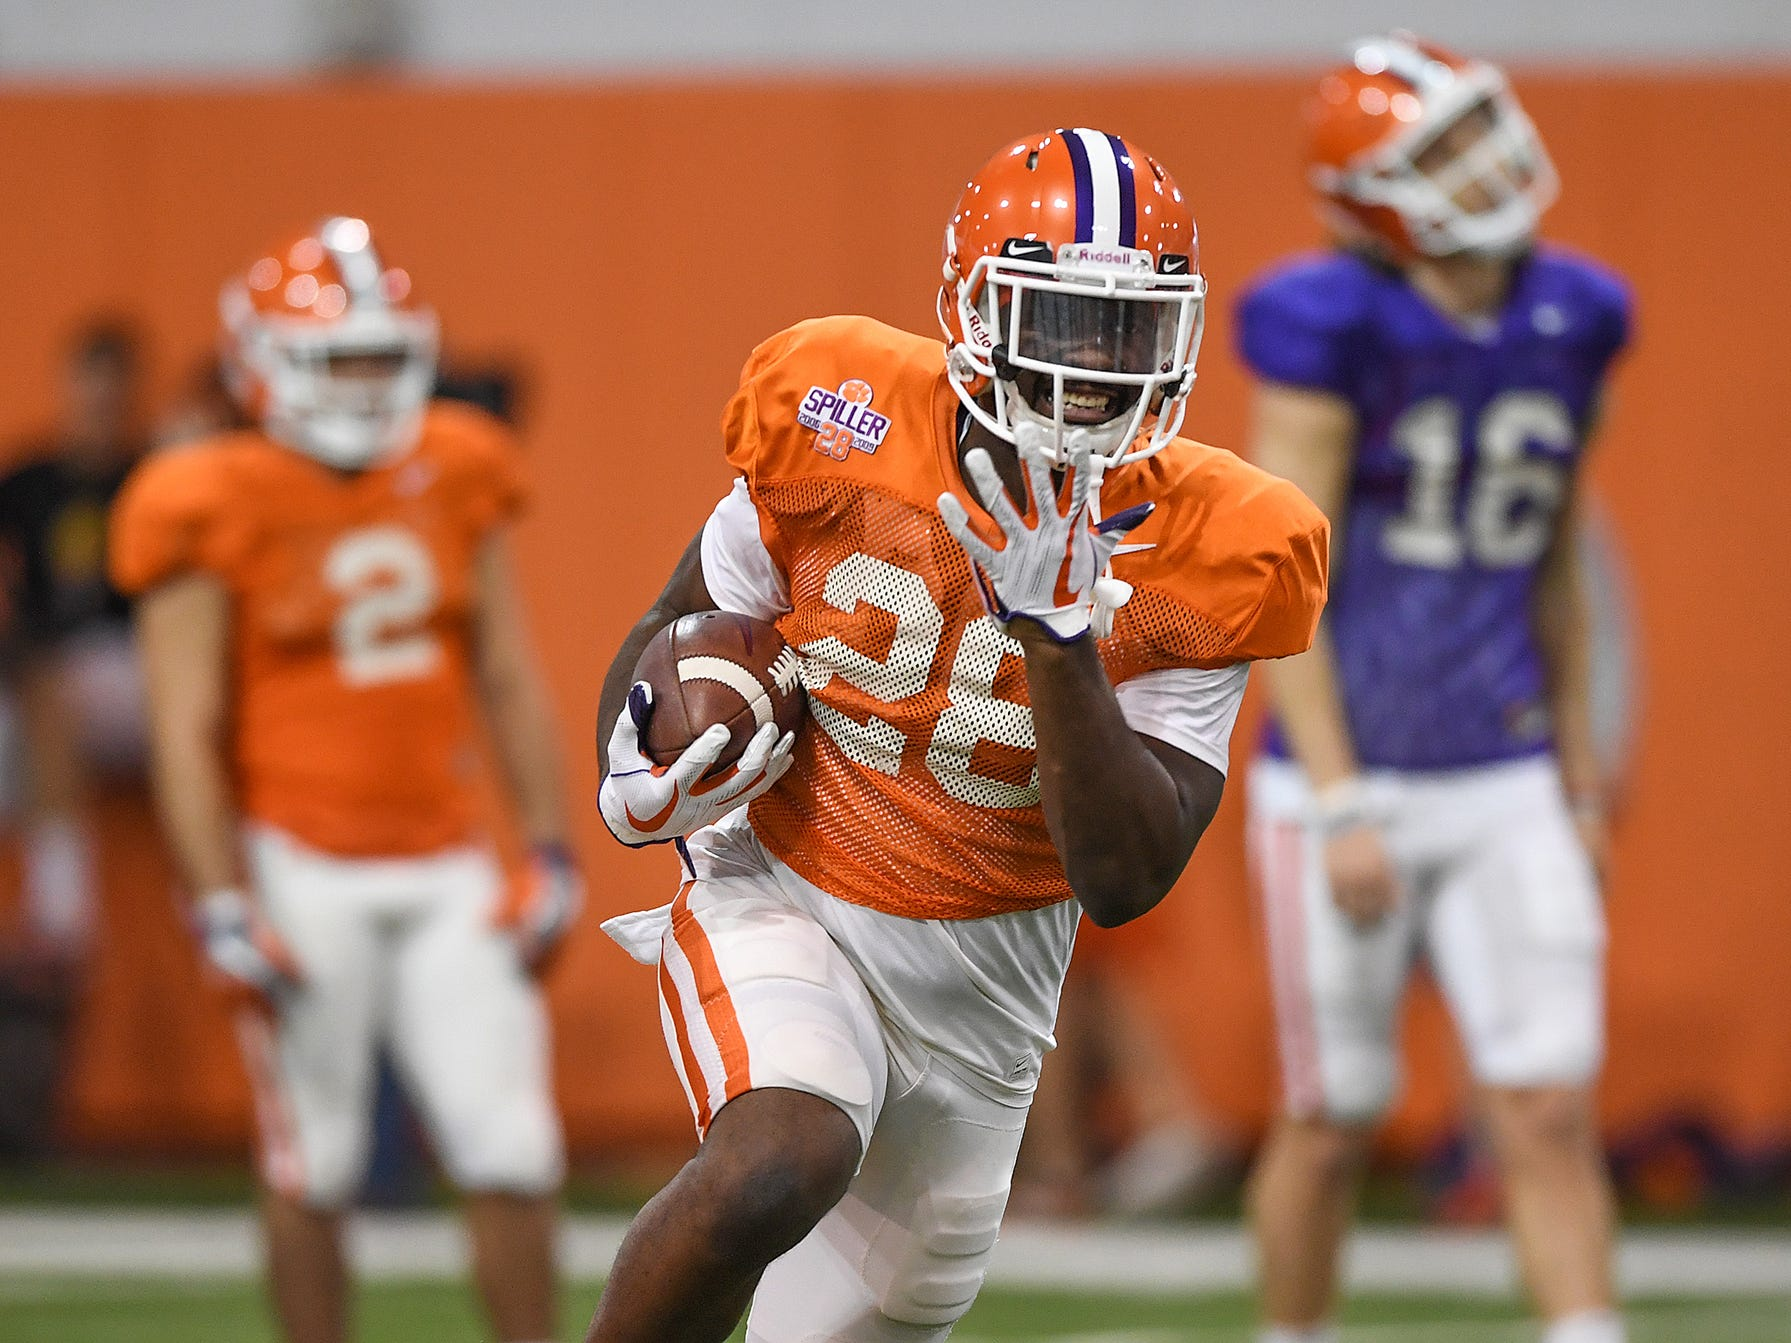 Clemson running back Tavien Feaster (28) carries the ball during the Tigers Cotton Bowl practice on Friday, December 14, 2018.